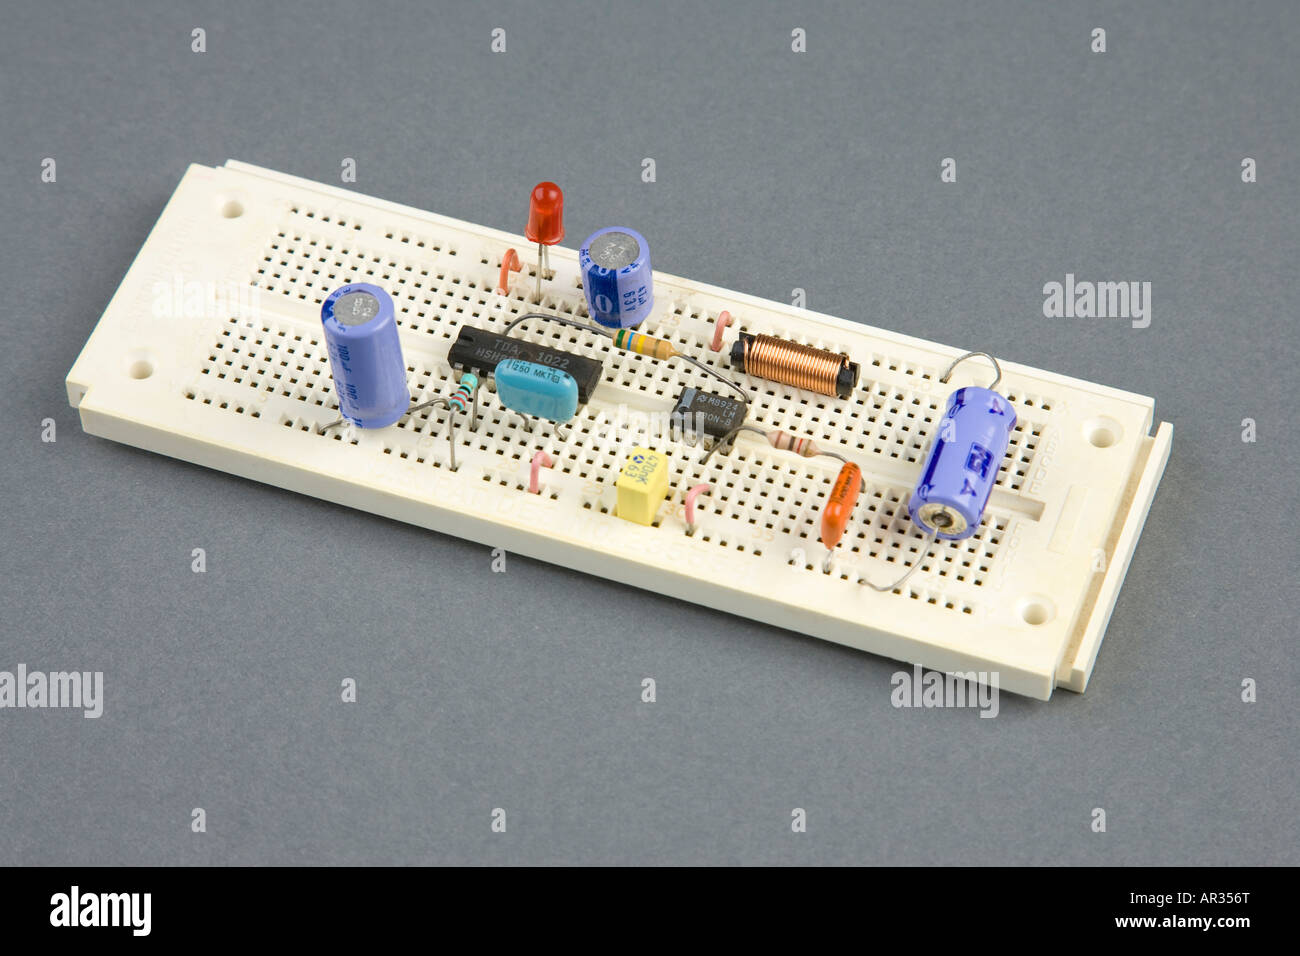 Prototype Electronic Circuit Stock Photos Board Artwork Stripboard And Breadboard Layout Experimental Image